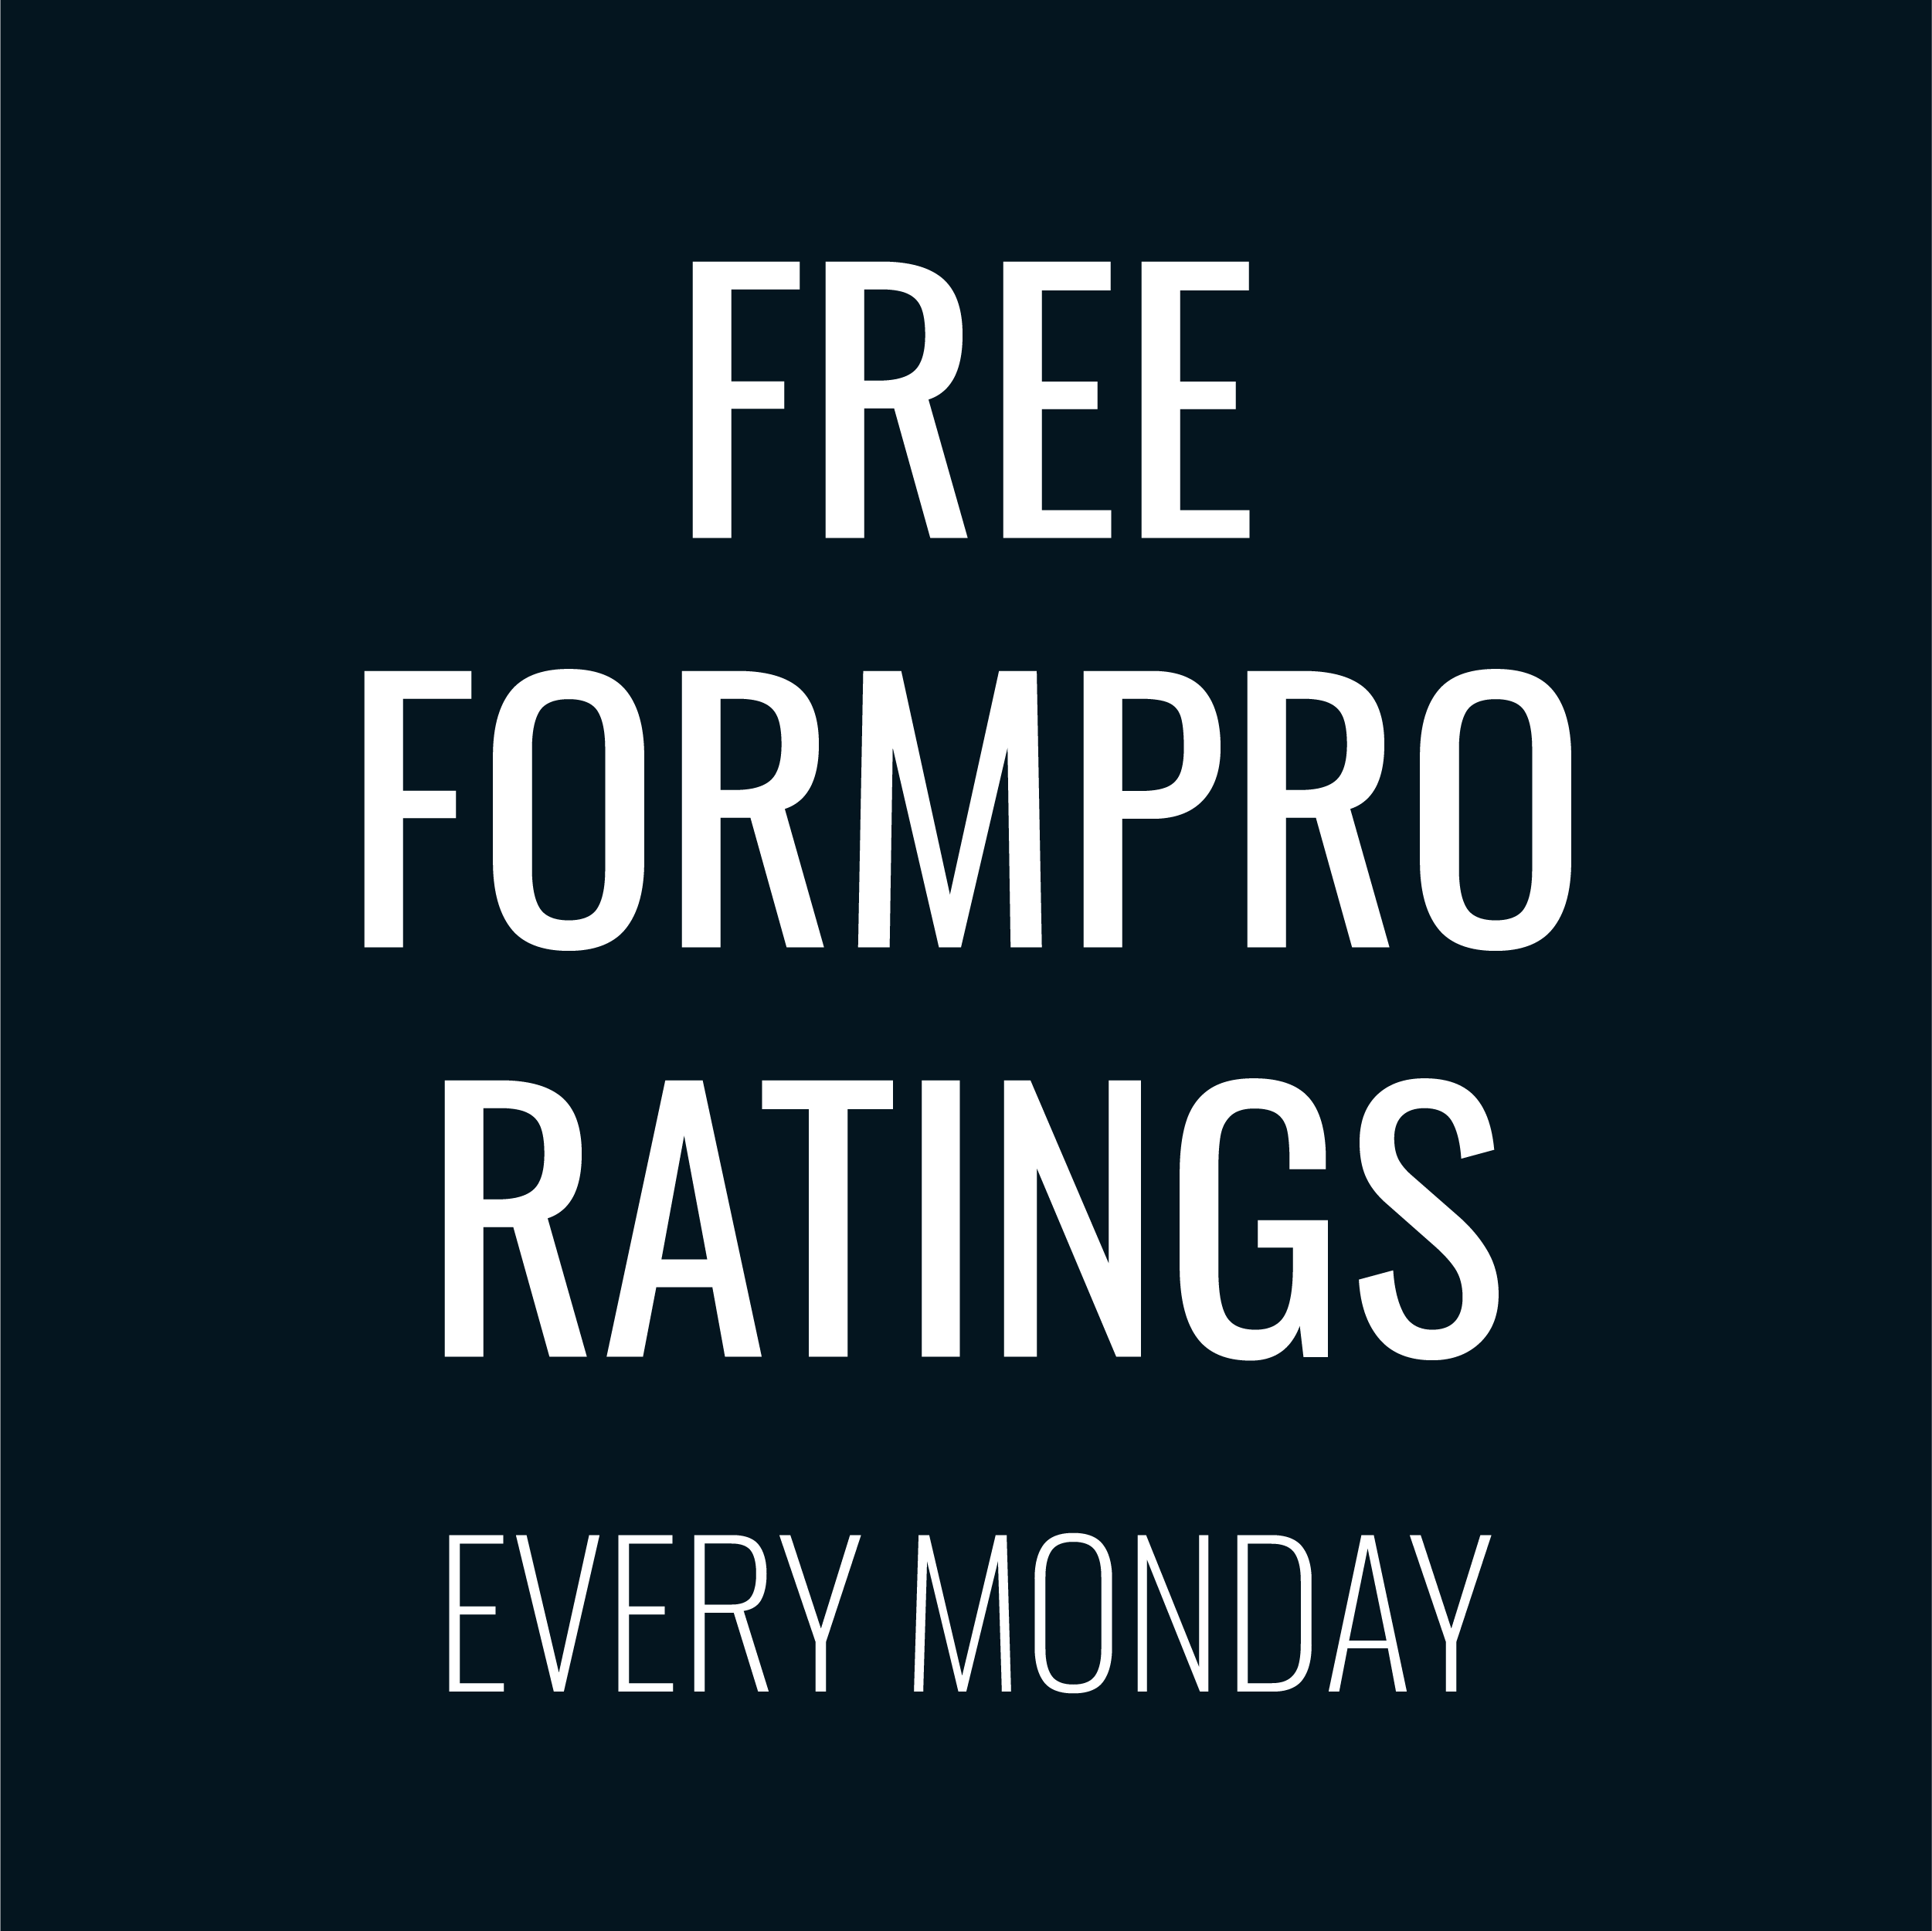 Free Greyhound Ratings Tuesday